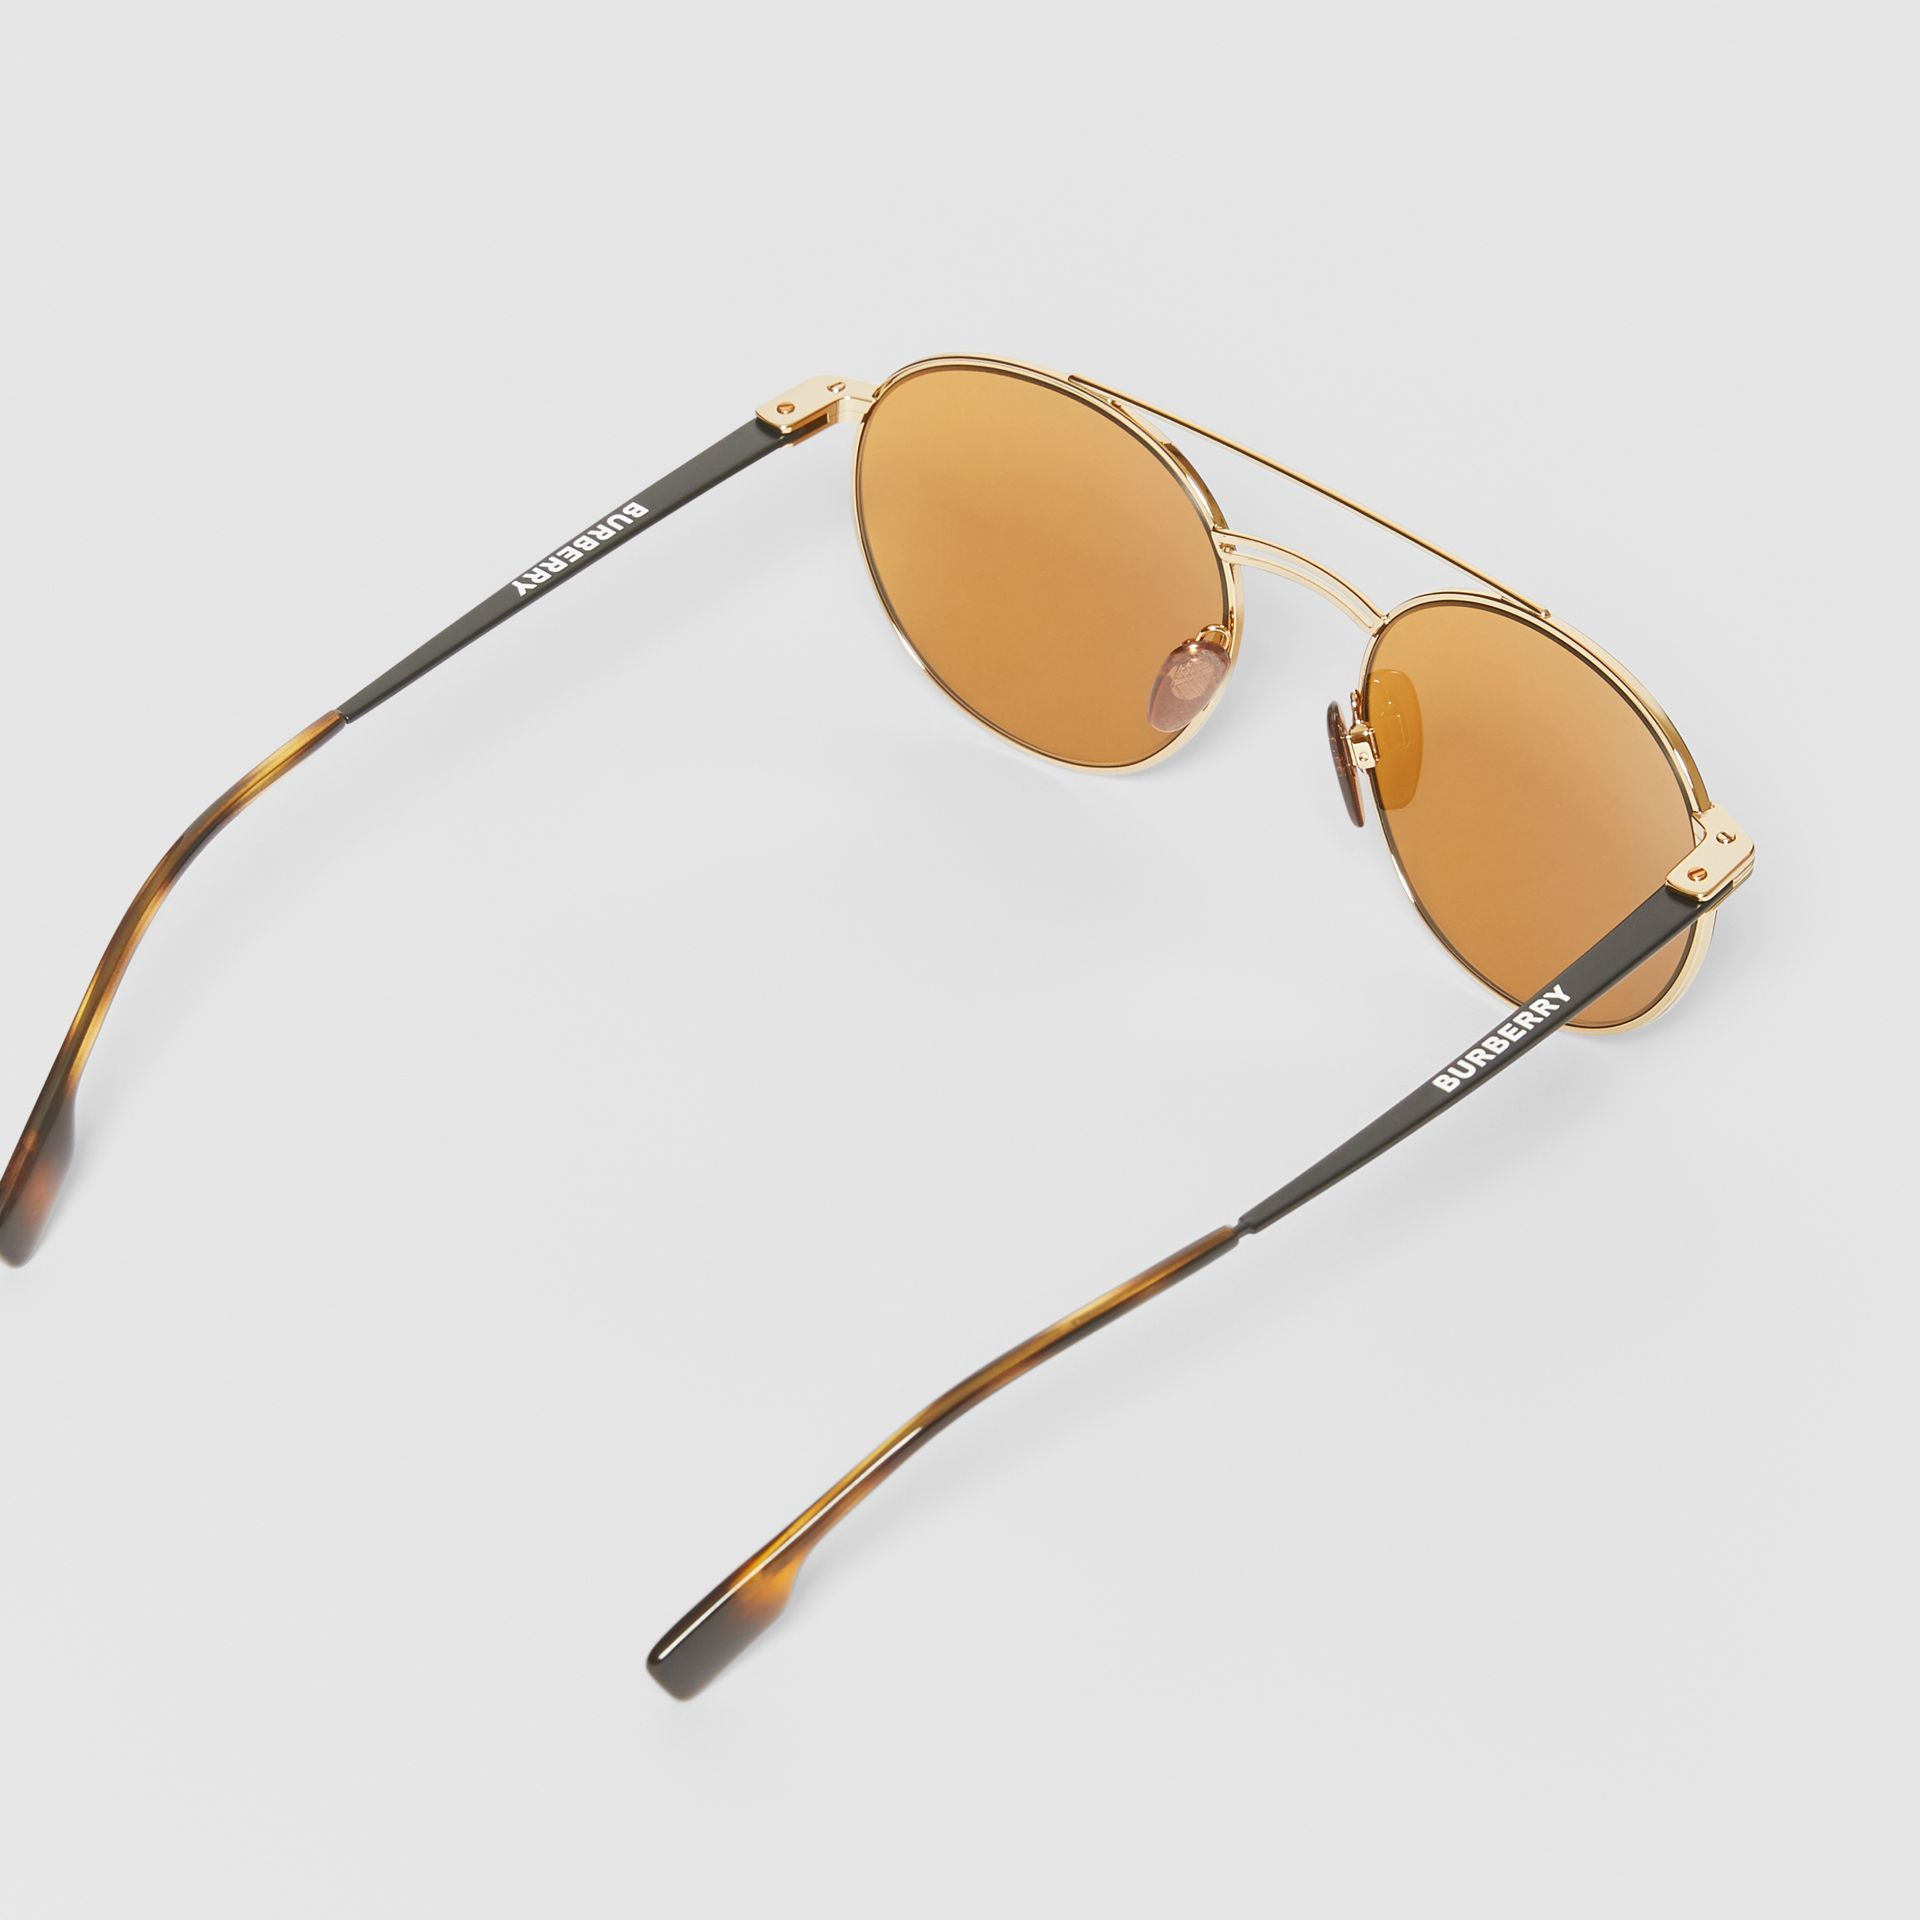 Top Bar Detail Round Frame Sunglasses in Tortoiseshell - Men | Burberry Singapore - gallery image 4